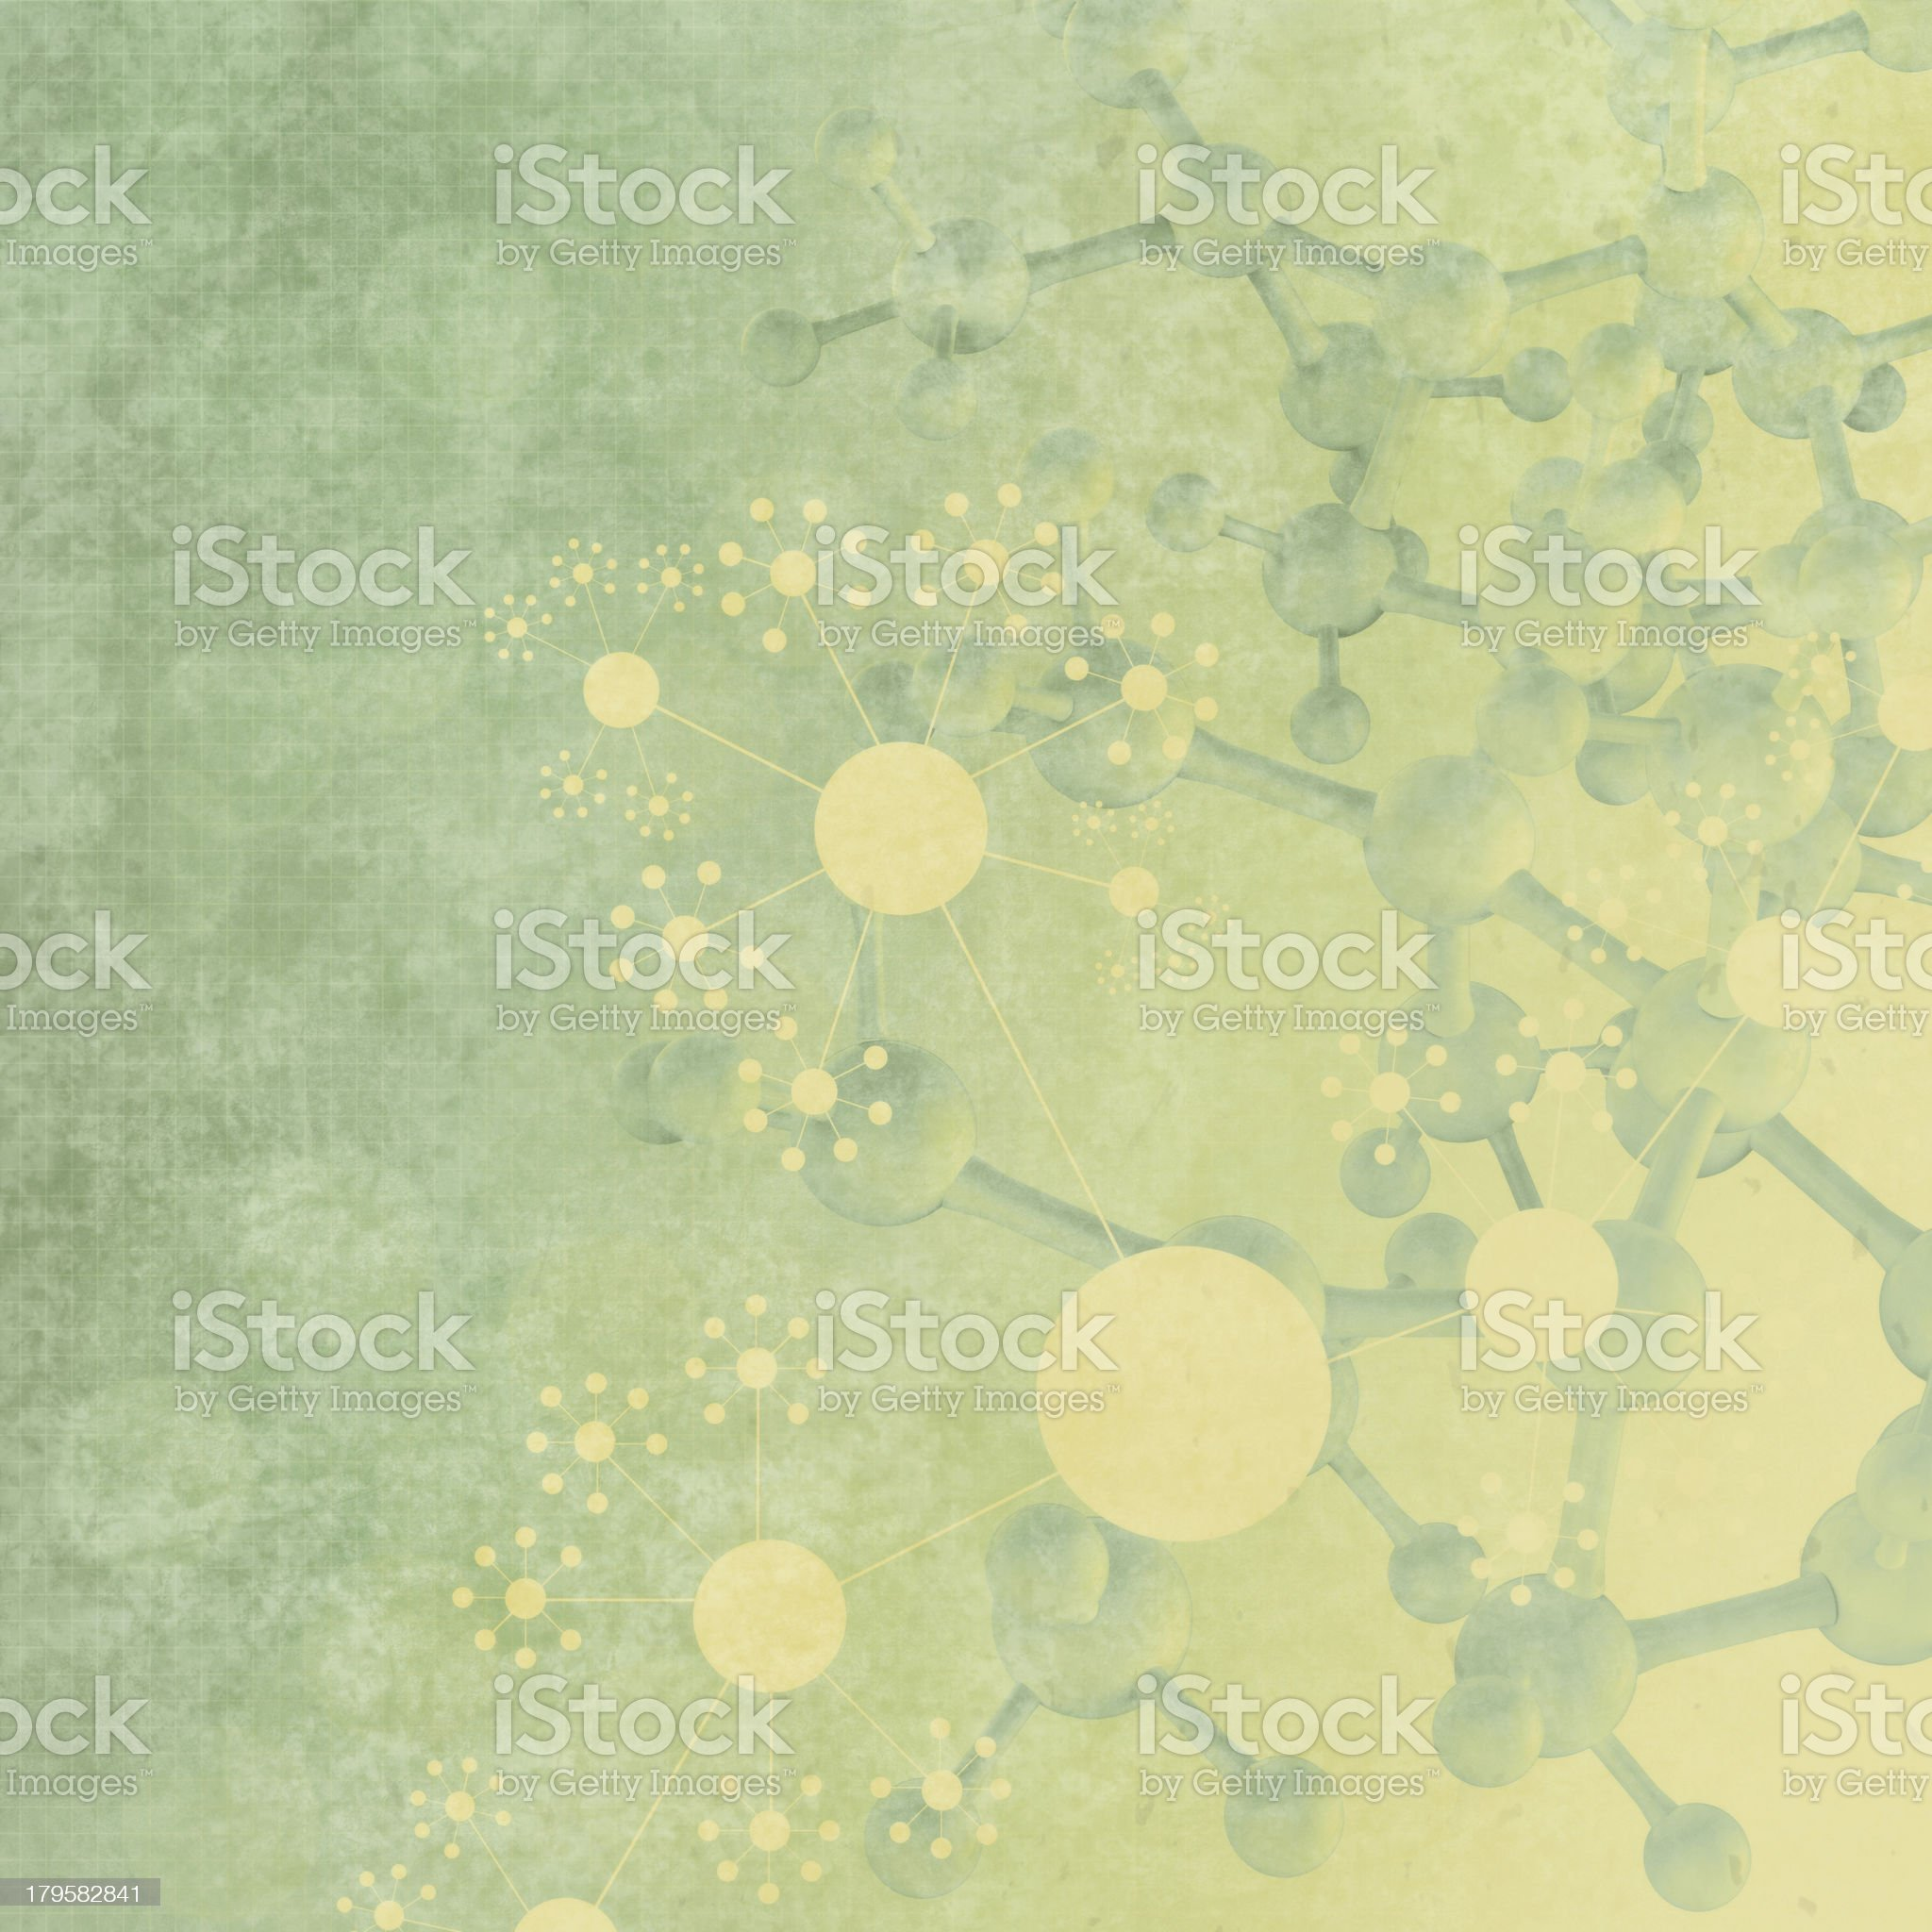 Abstract 3d molecules medical background royalty-free stock photo